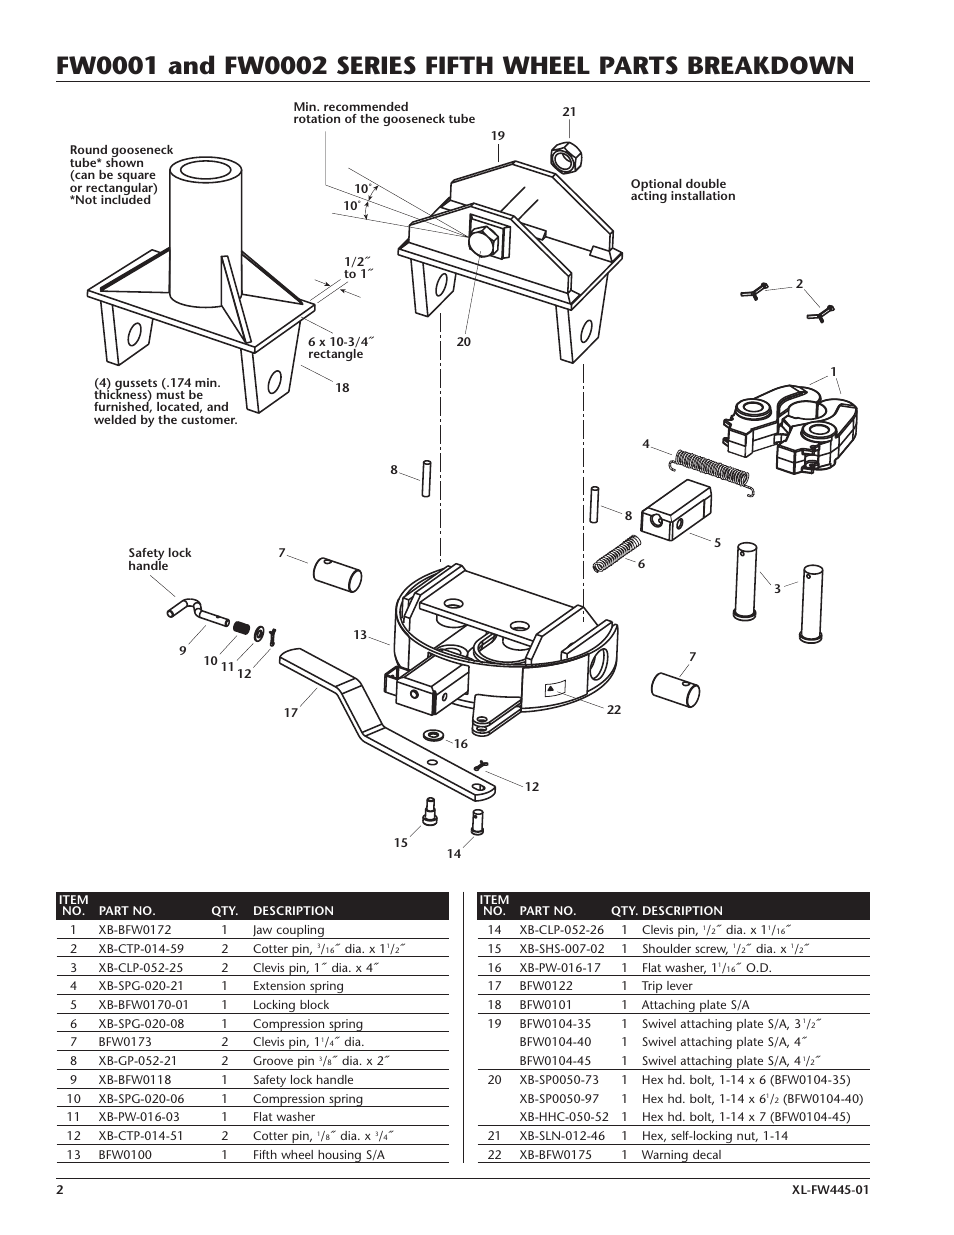 holland fifth wheel parts pdf